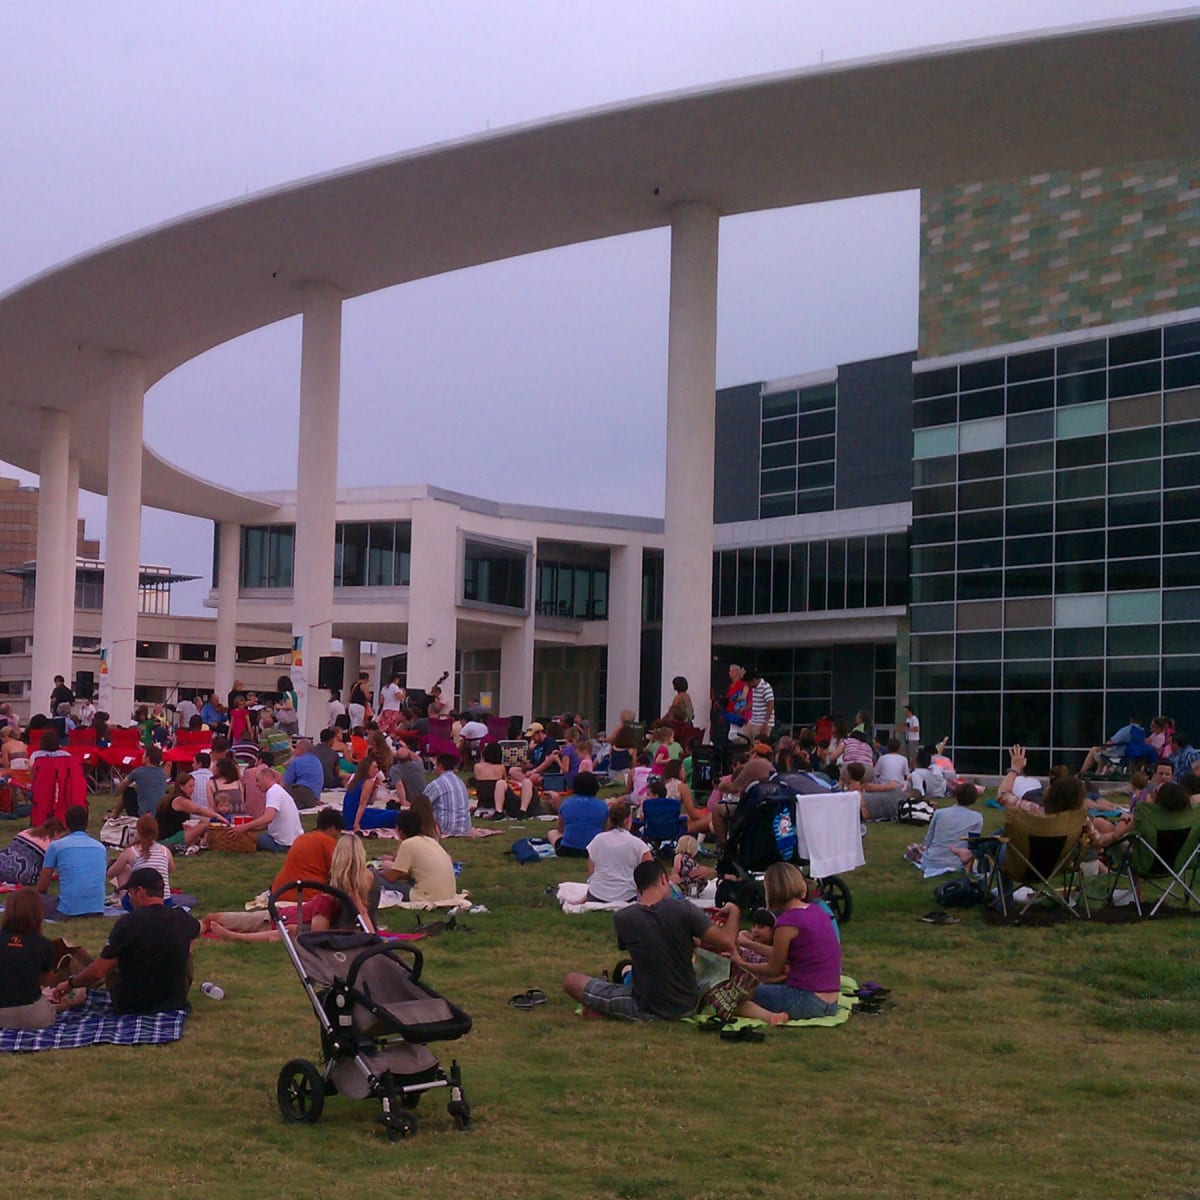 crowd at Concerts in the Park at The Long Center